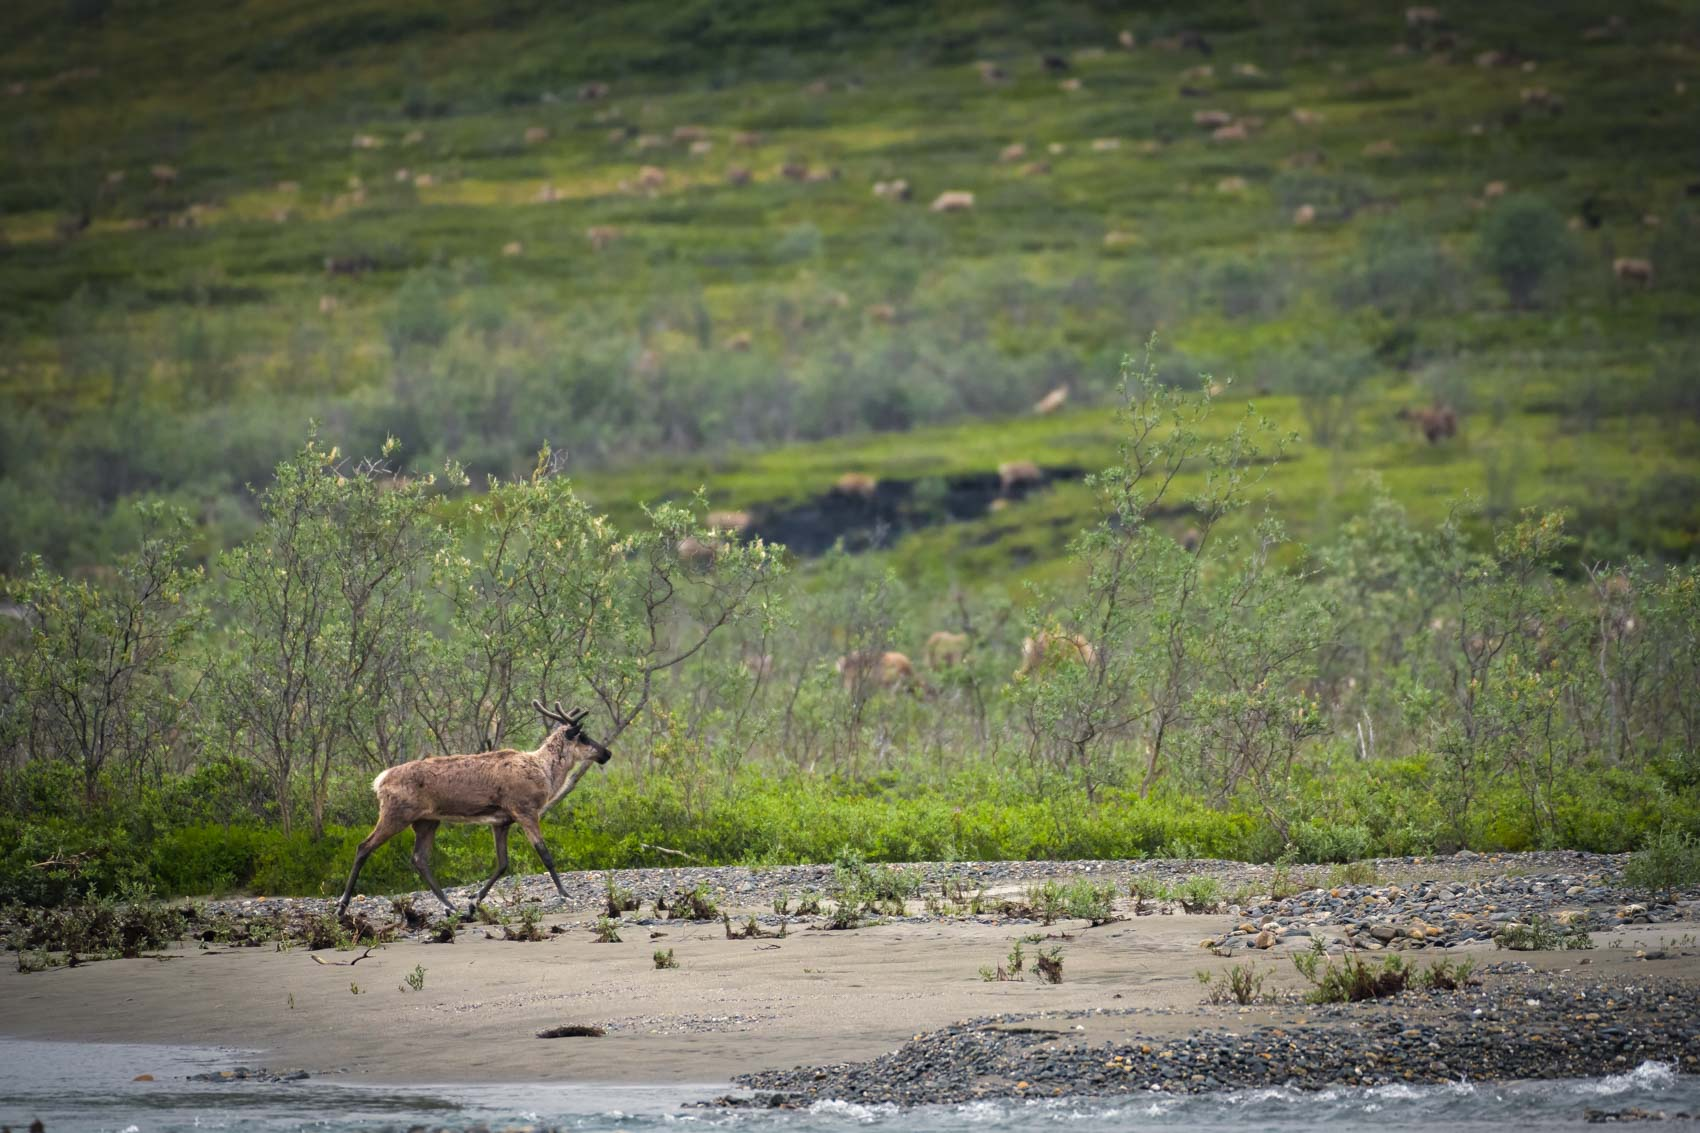 Porcupine caribou walking along the edge of the Huluhulu river in the in the Arctic National Wildlife Refuge